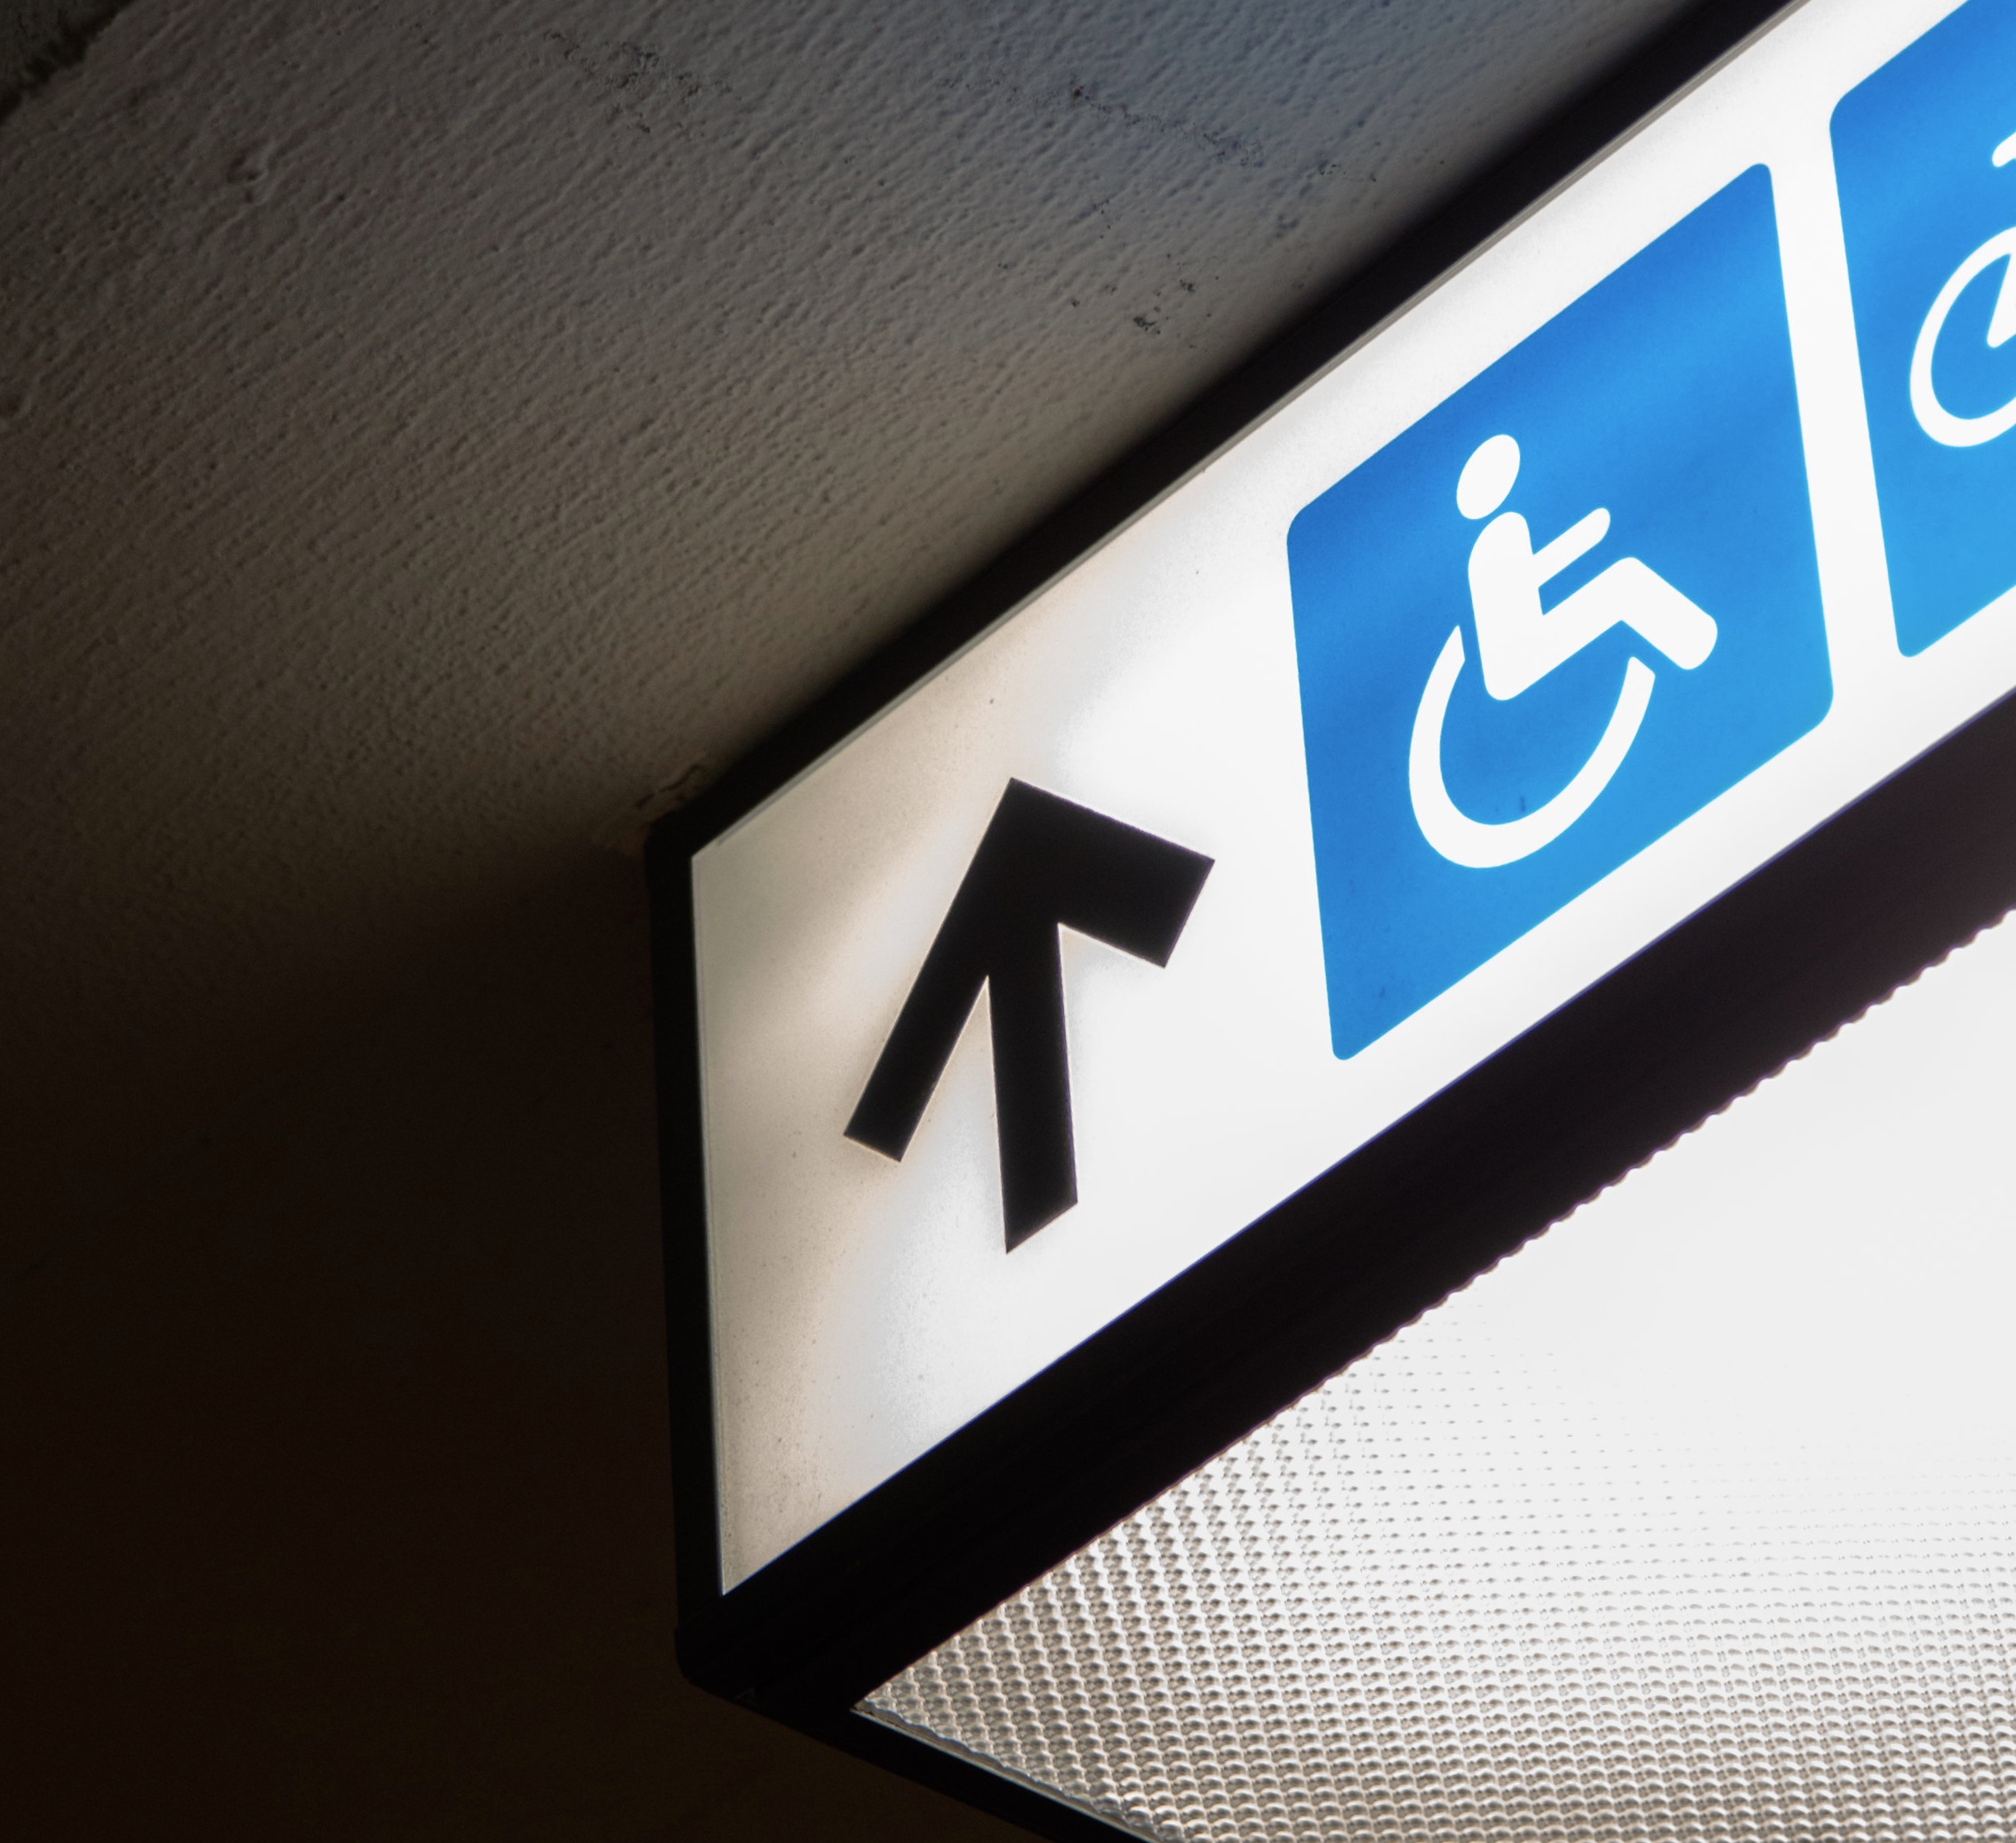 Disability Allowance - Disability Allowance is a payment for people with a specified disability whose income falls below certain limits and who are aged between 16 and under 66.